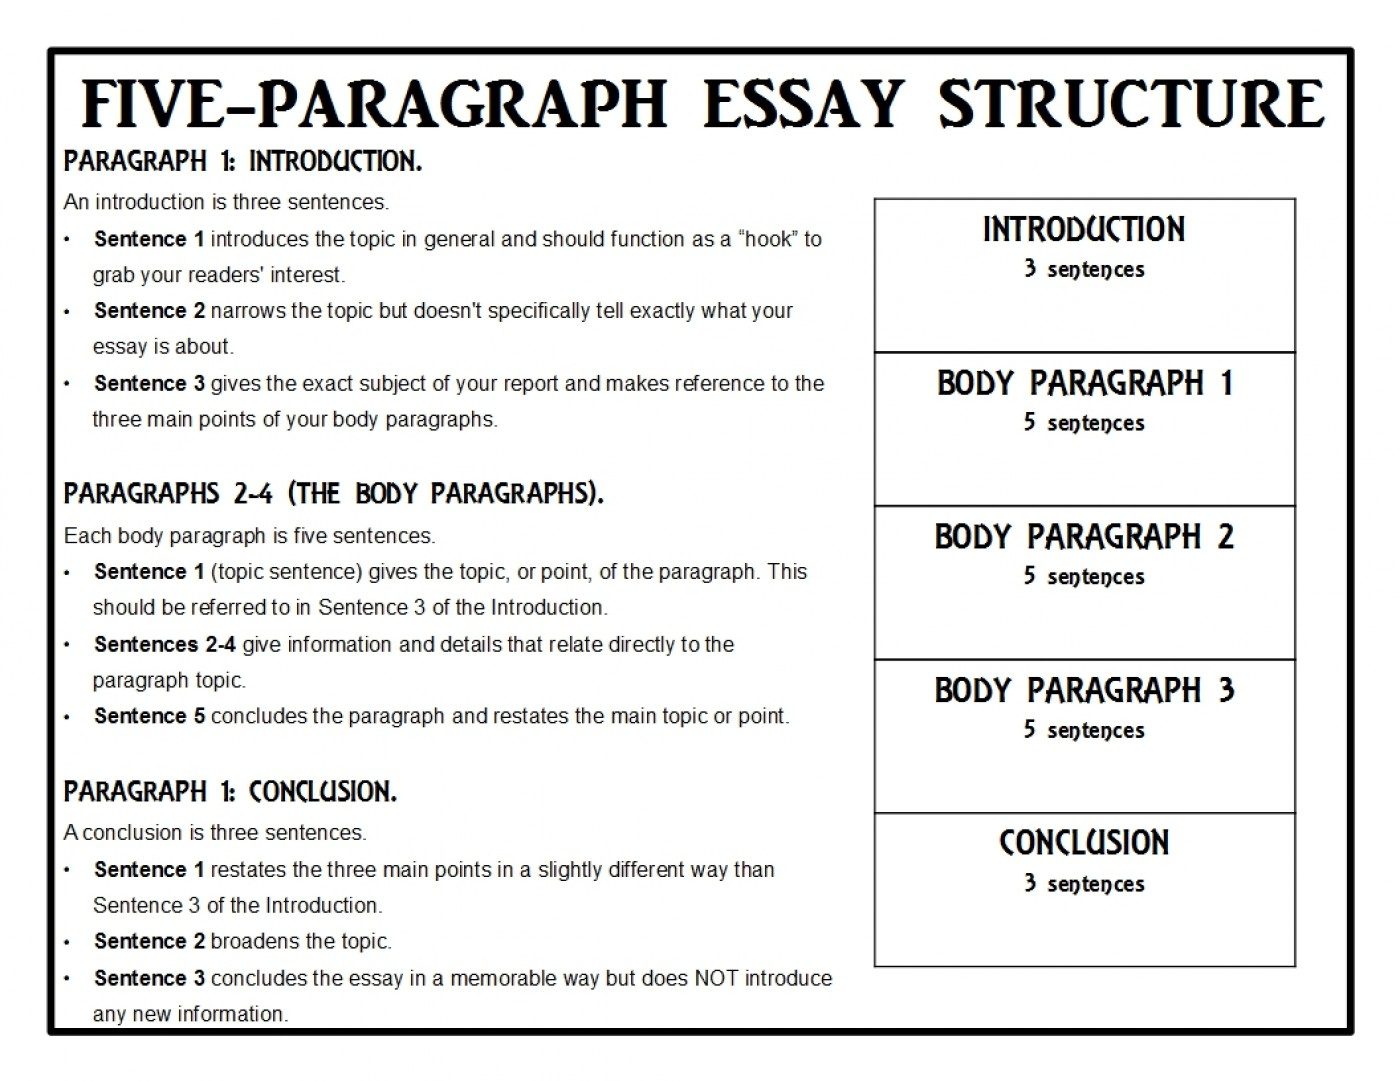 015 Animalreport1 Paragraph Essay Singular 5 Outline Template Printable Topics 4th Grade For High School 1400